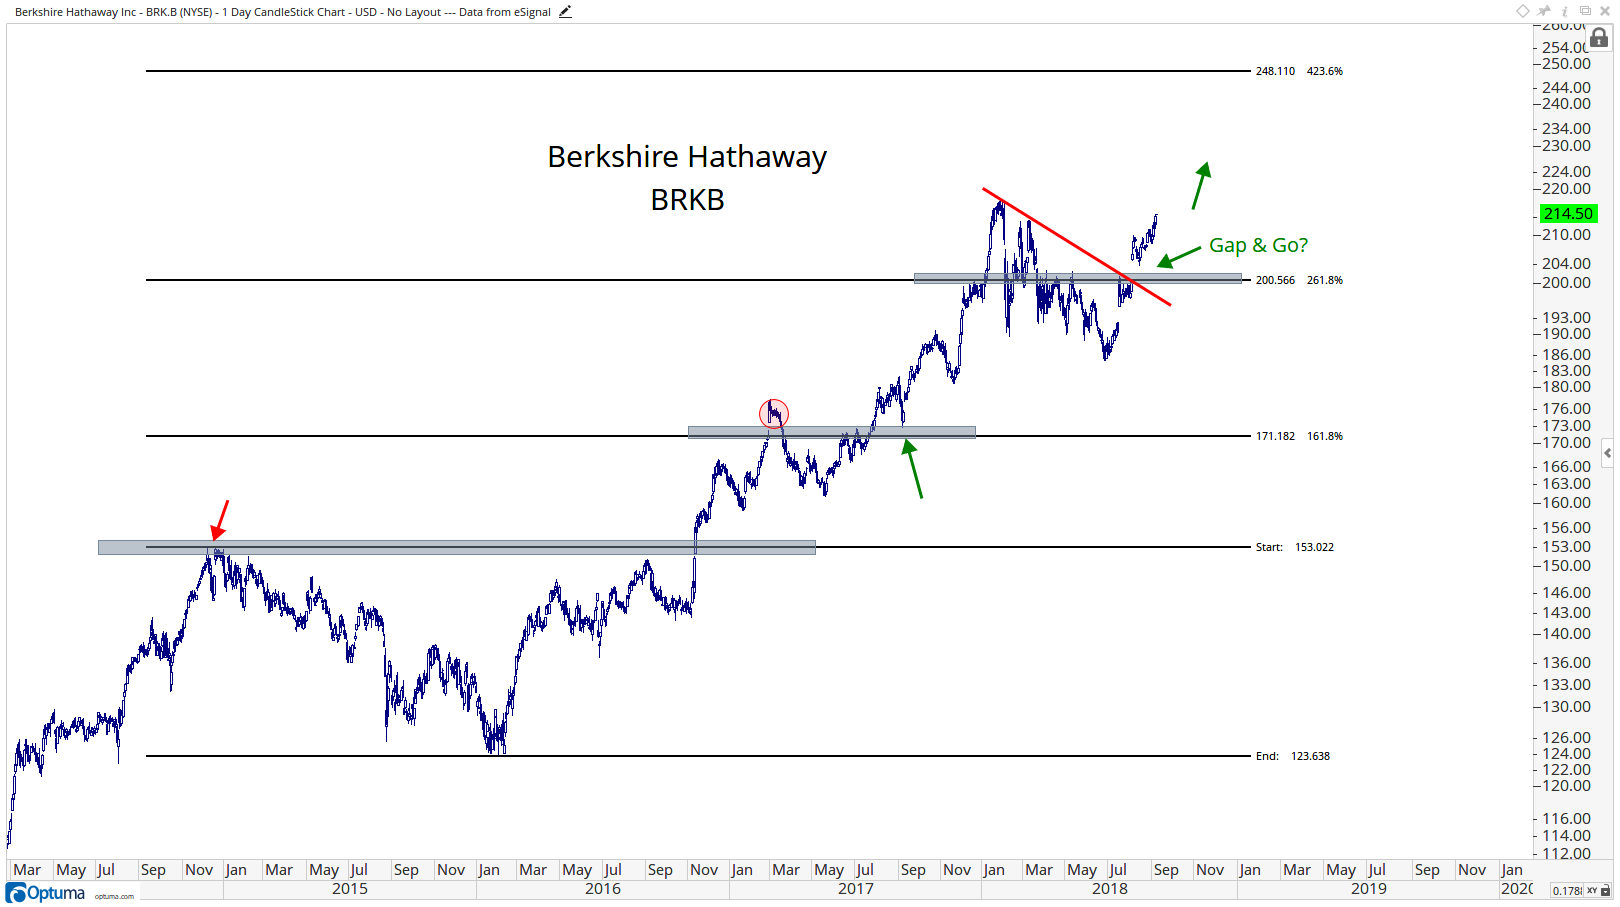 Technical chart showing the performance of Berkshire Hathaway Inc. (BRK.B)